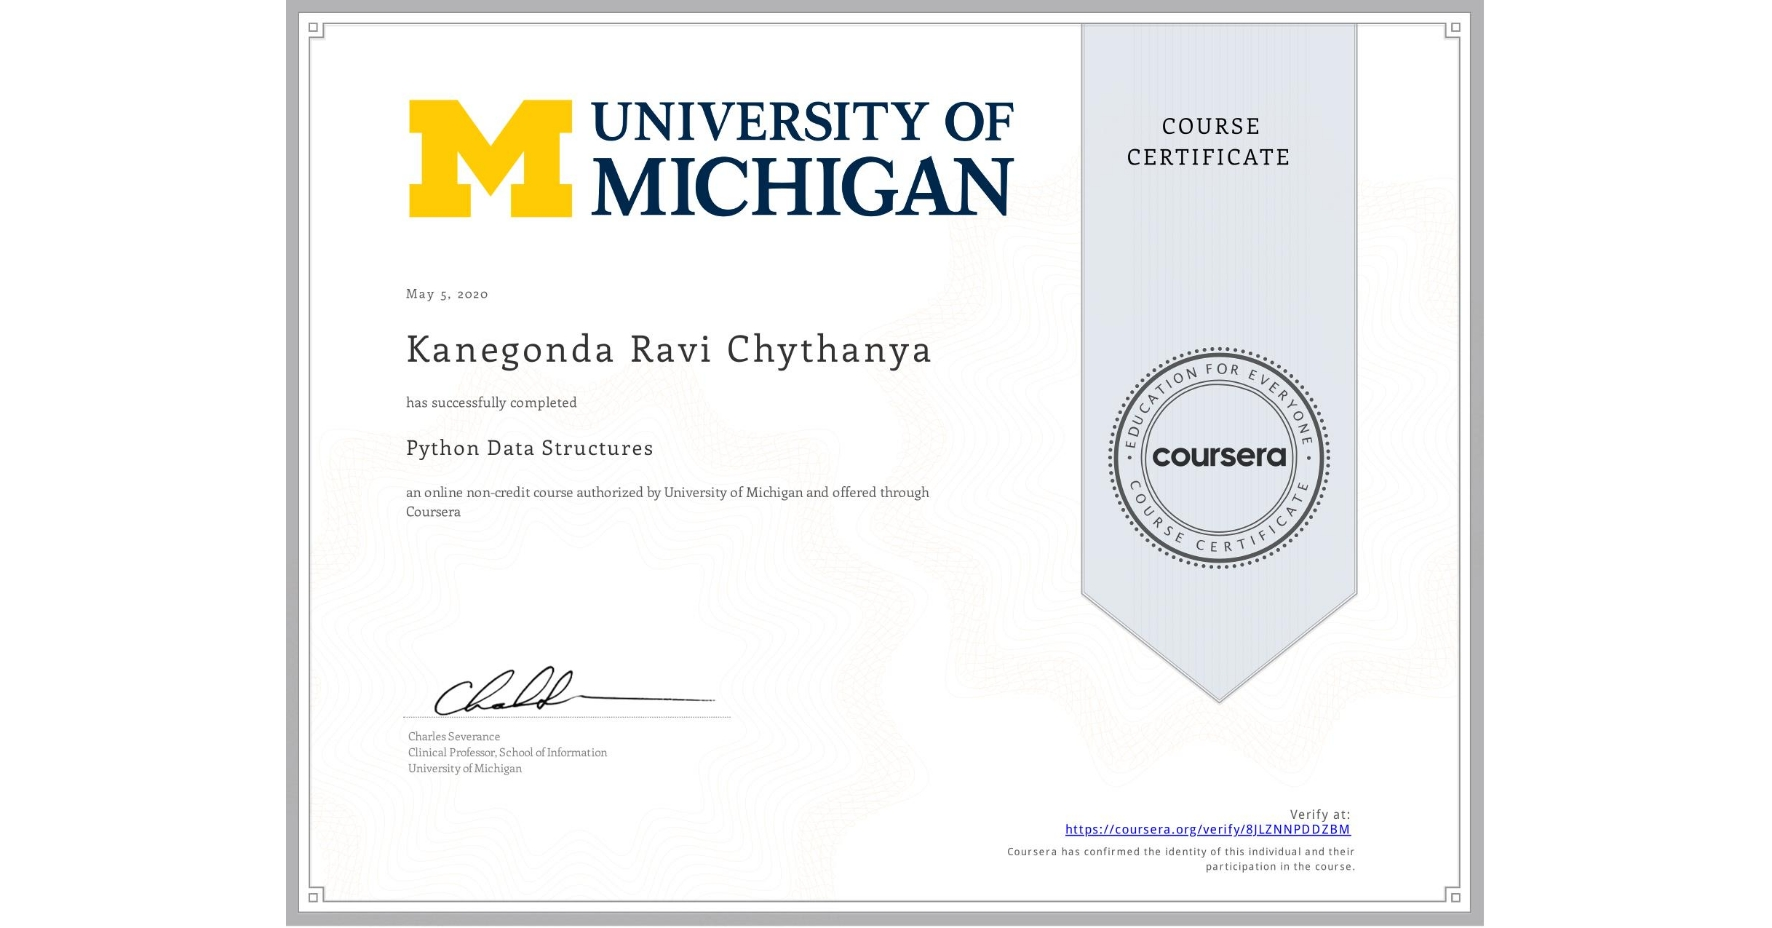 View certificate for Kanegonda Ravi Chythanya, Python Data Structures, an online non-credit course authorized by University of Michigan and offered through Coursera